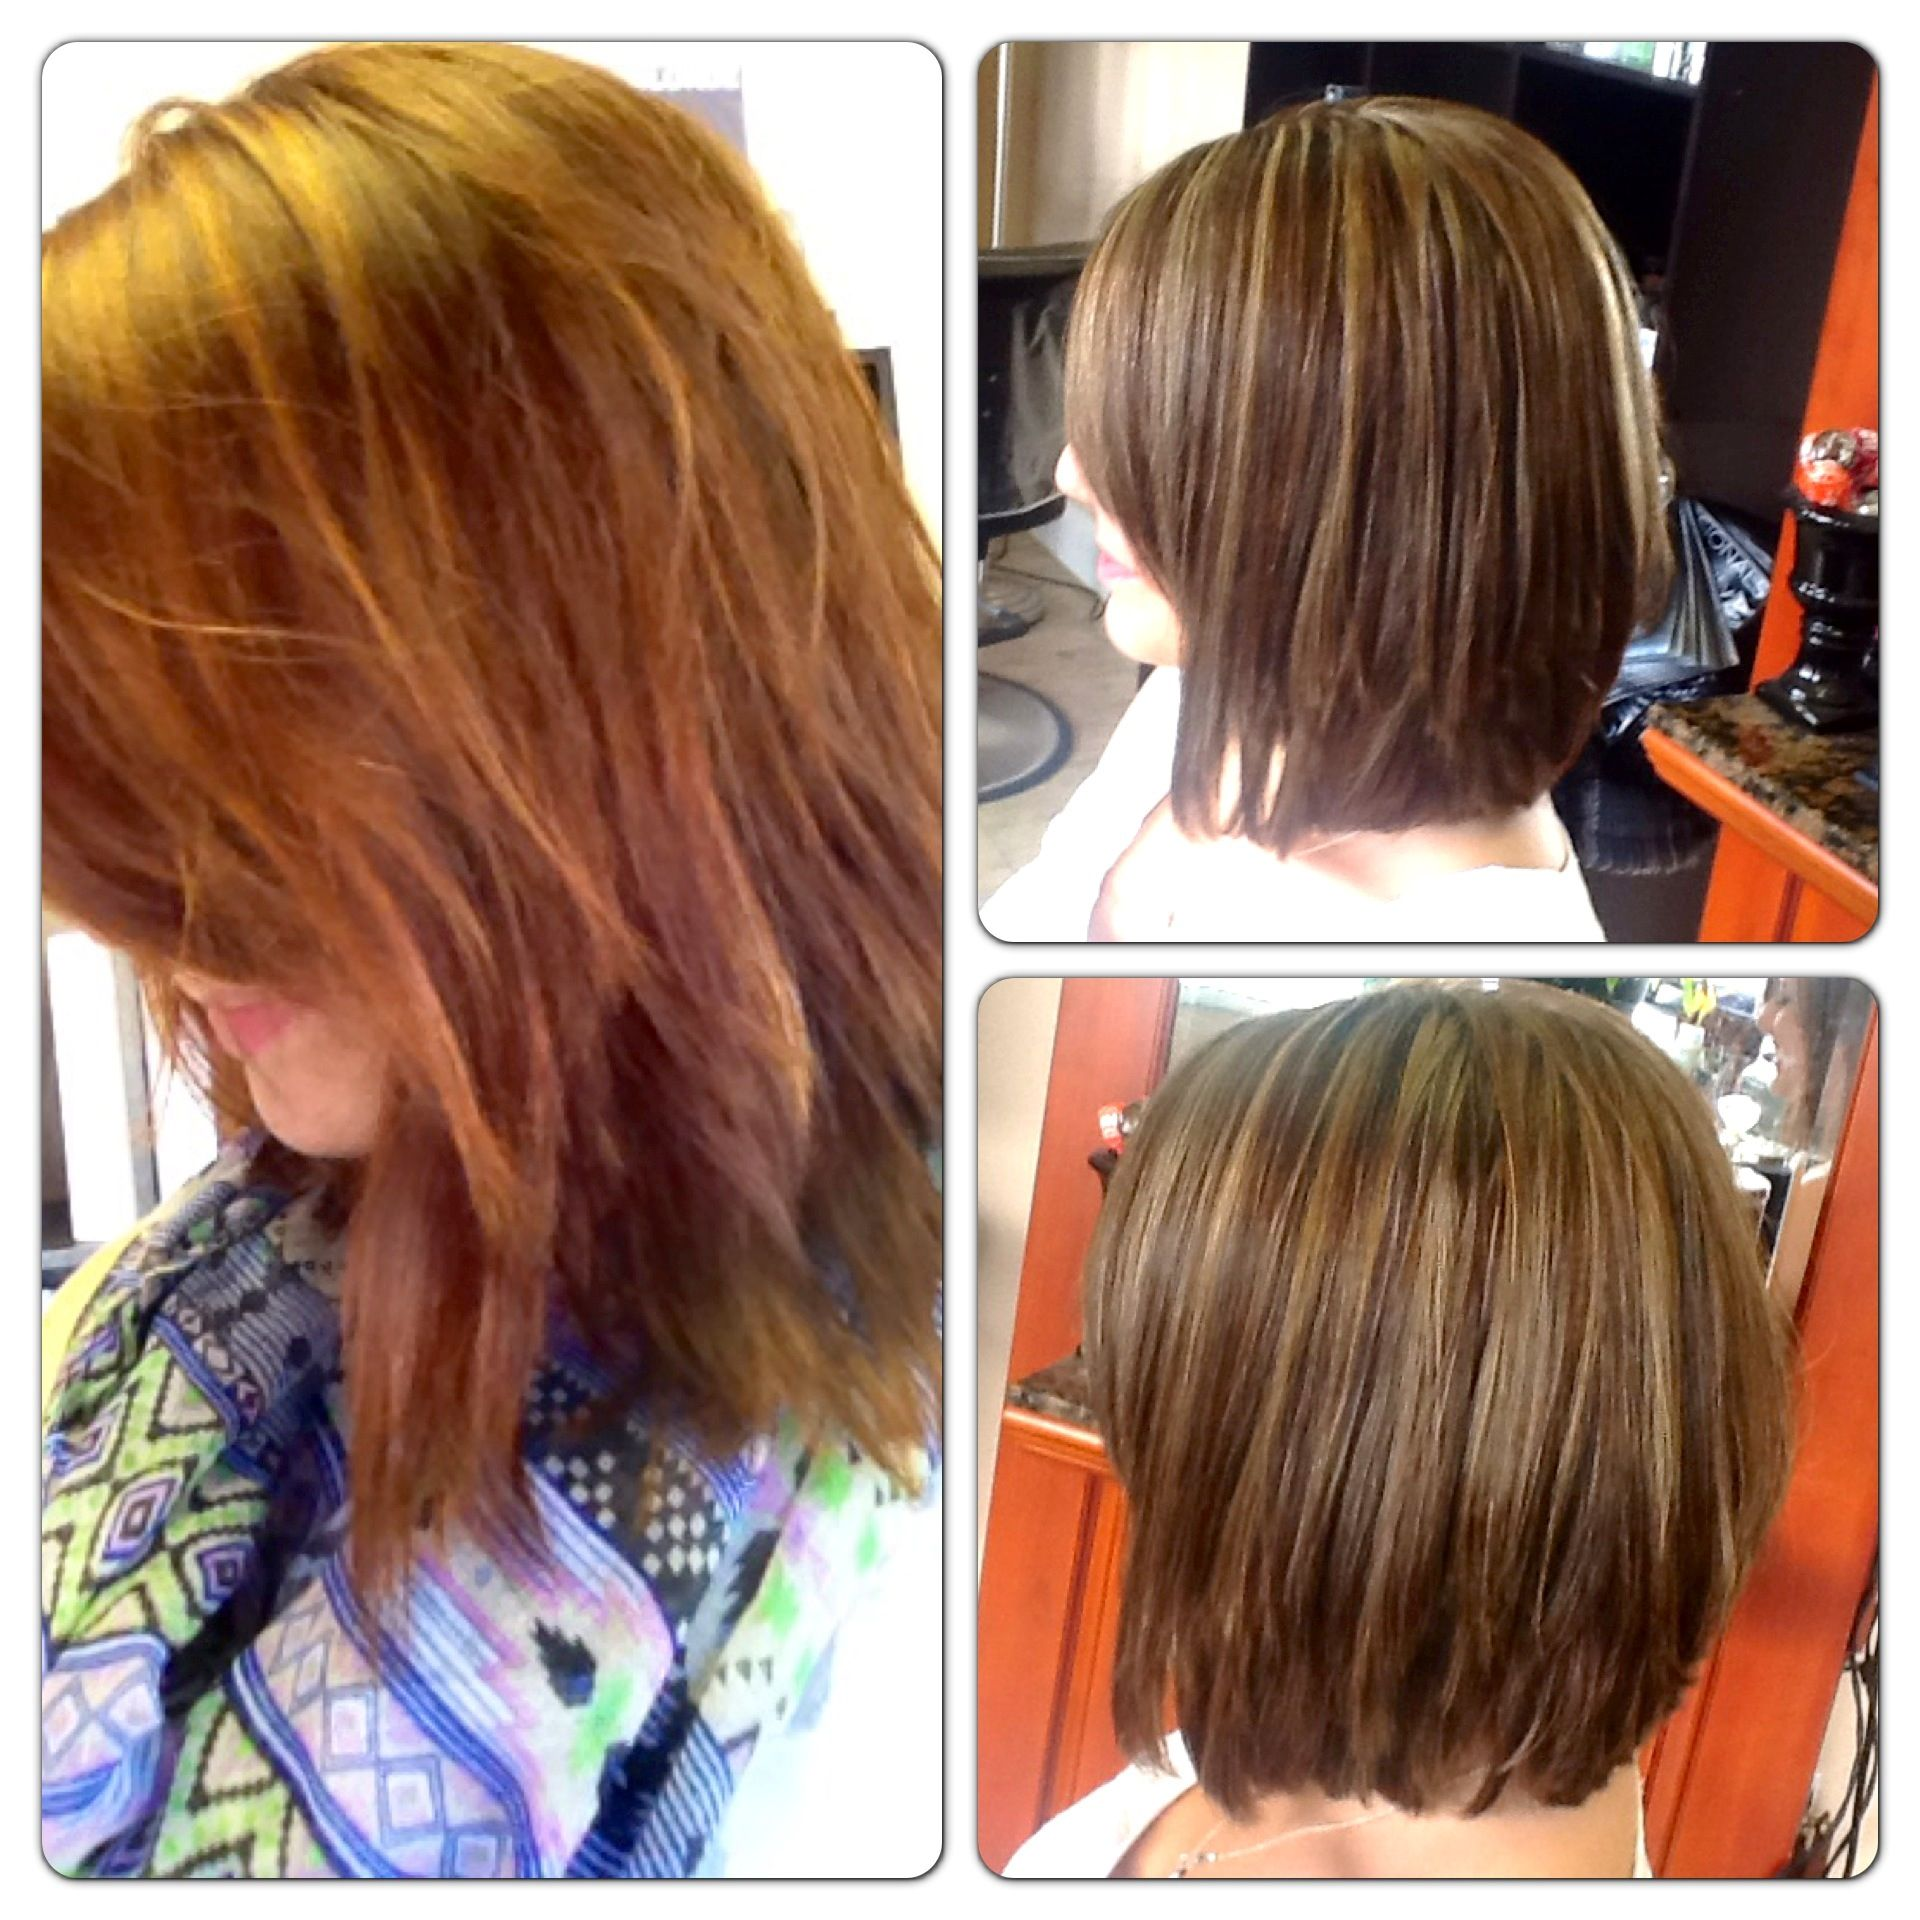 Before And After Redhead To Brunette With Natural Highlights By Amber Crouse Michelle S Salon Day Spa Dover Hair Color Natural Highlights Hair Styles